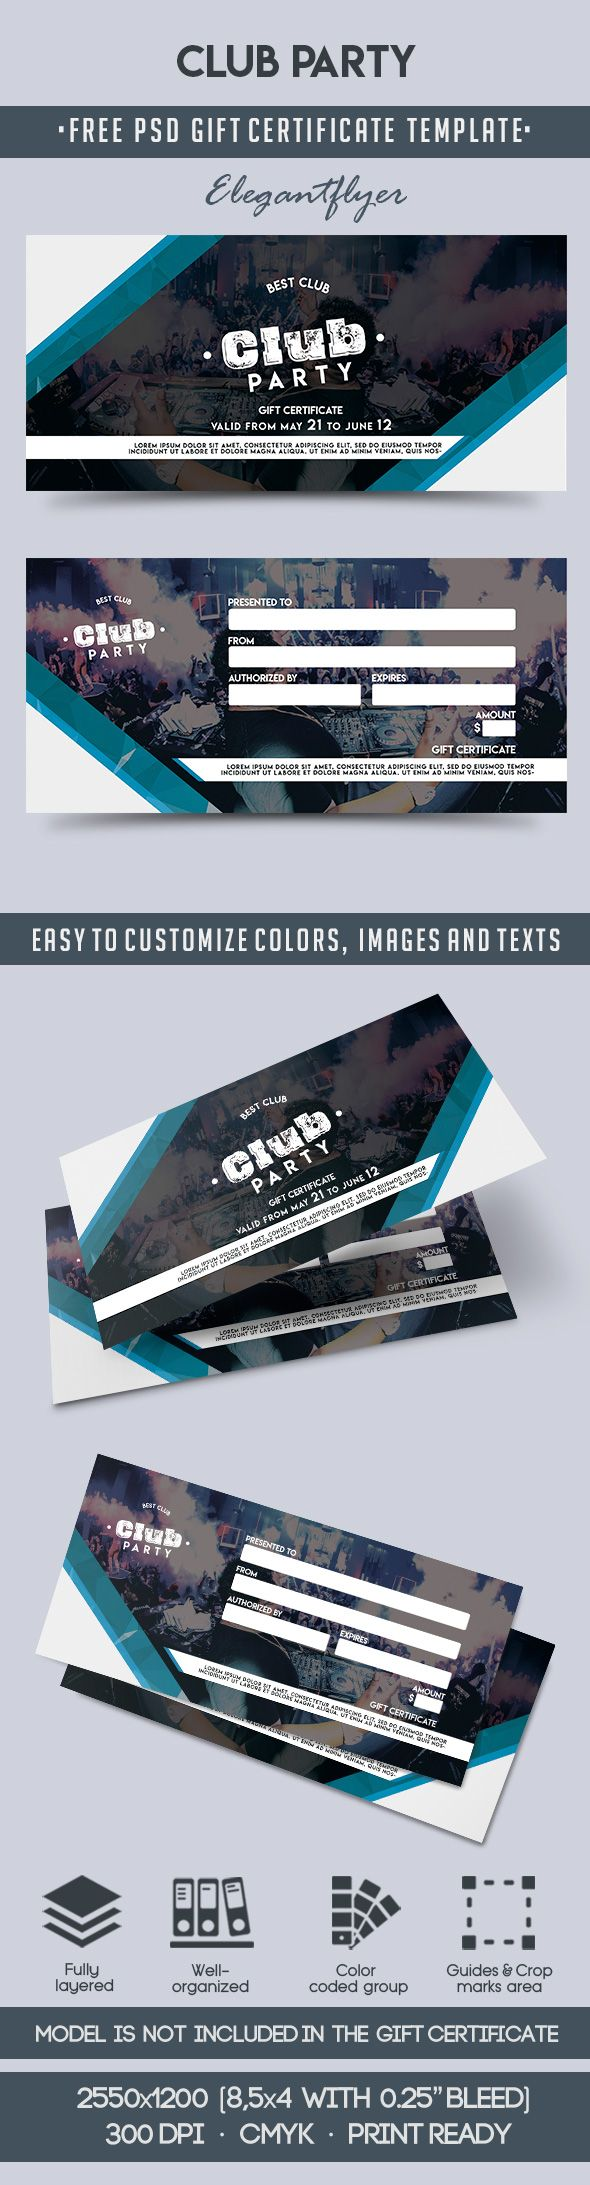 Club Party – Free Gift Certificate PSD Template